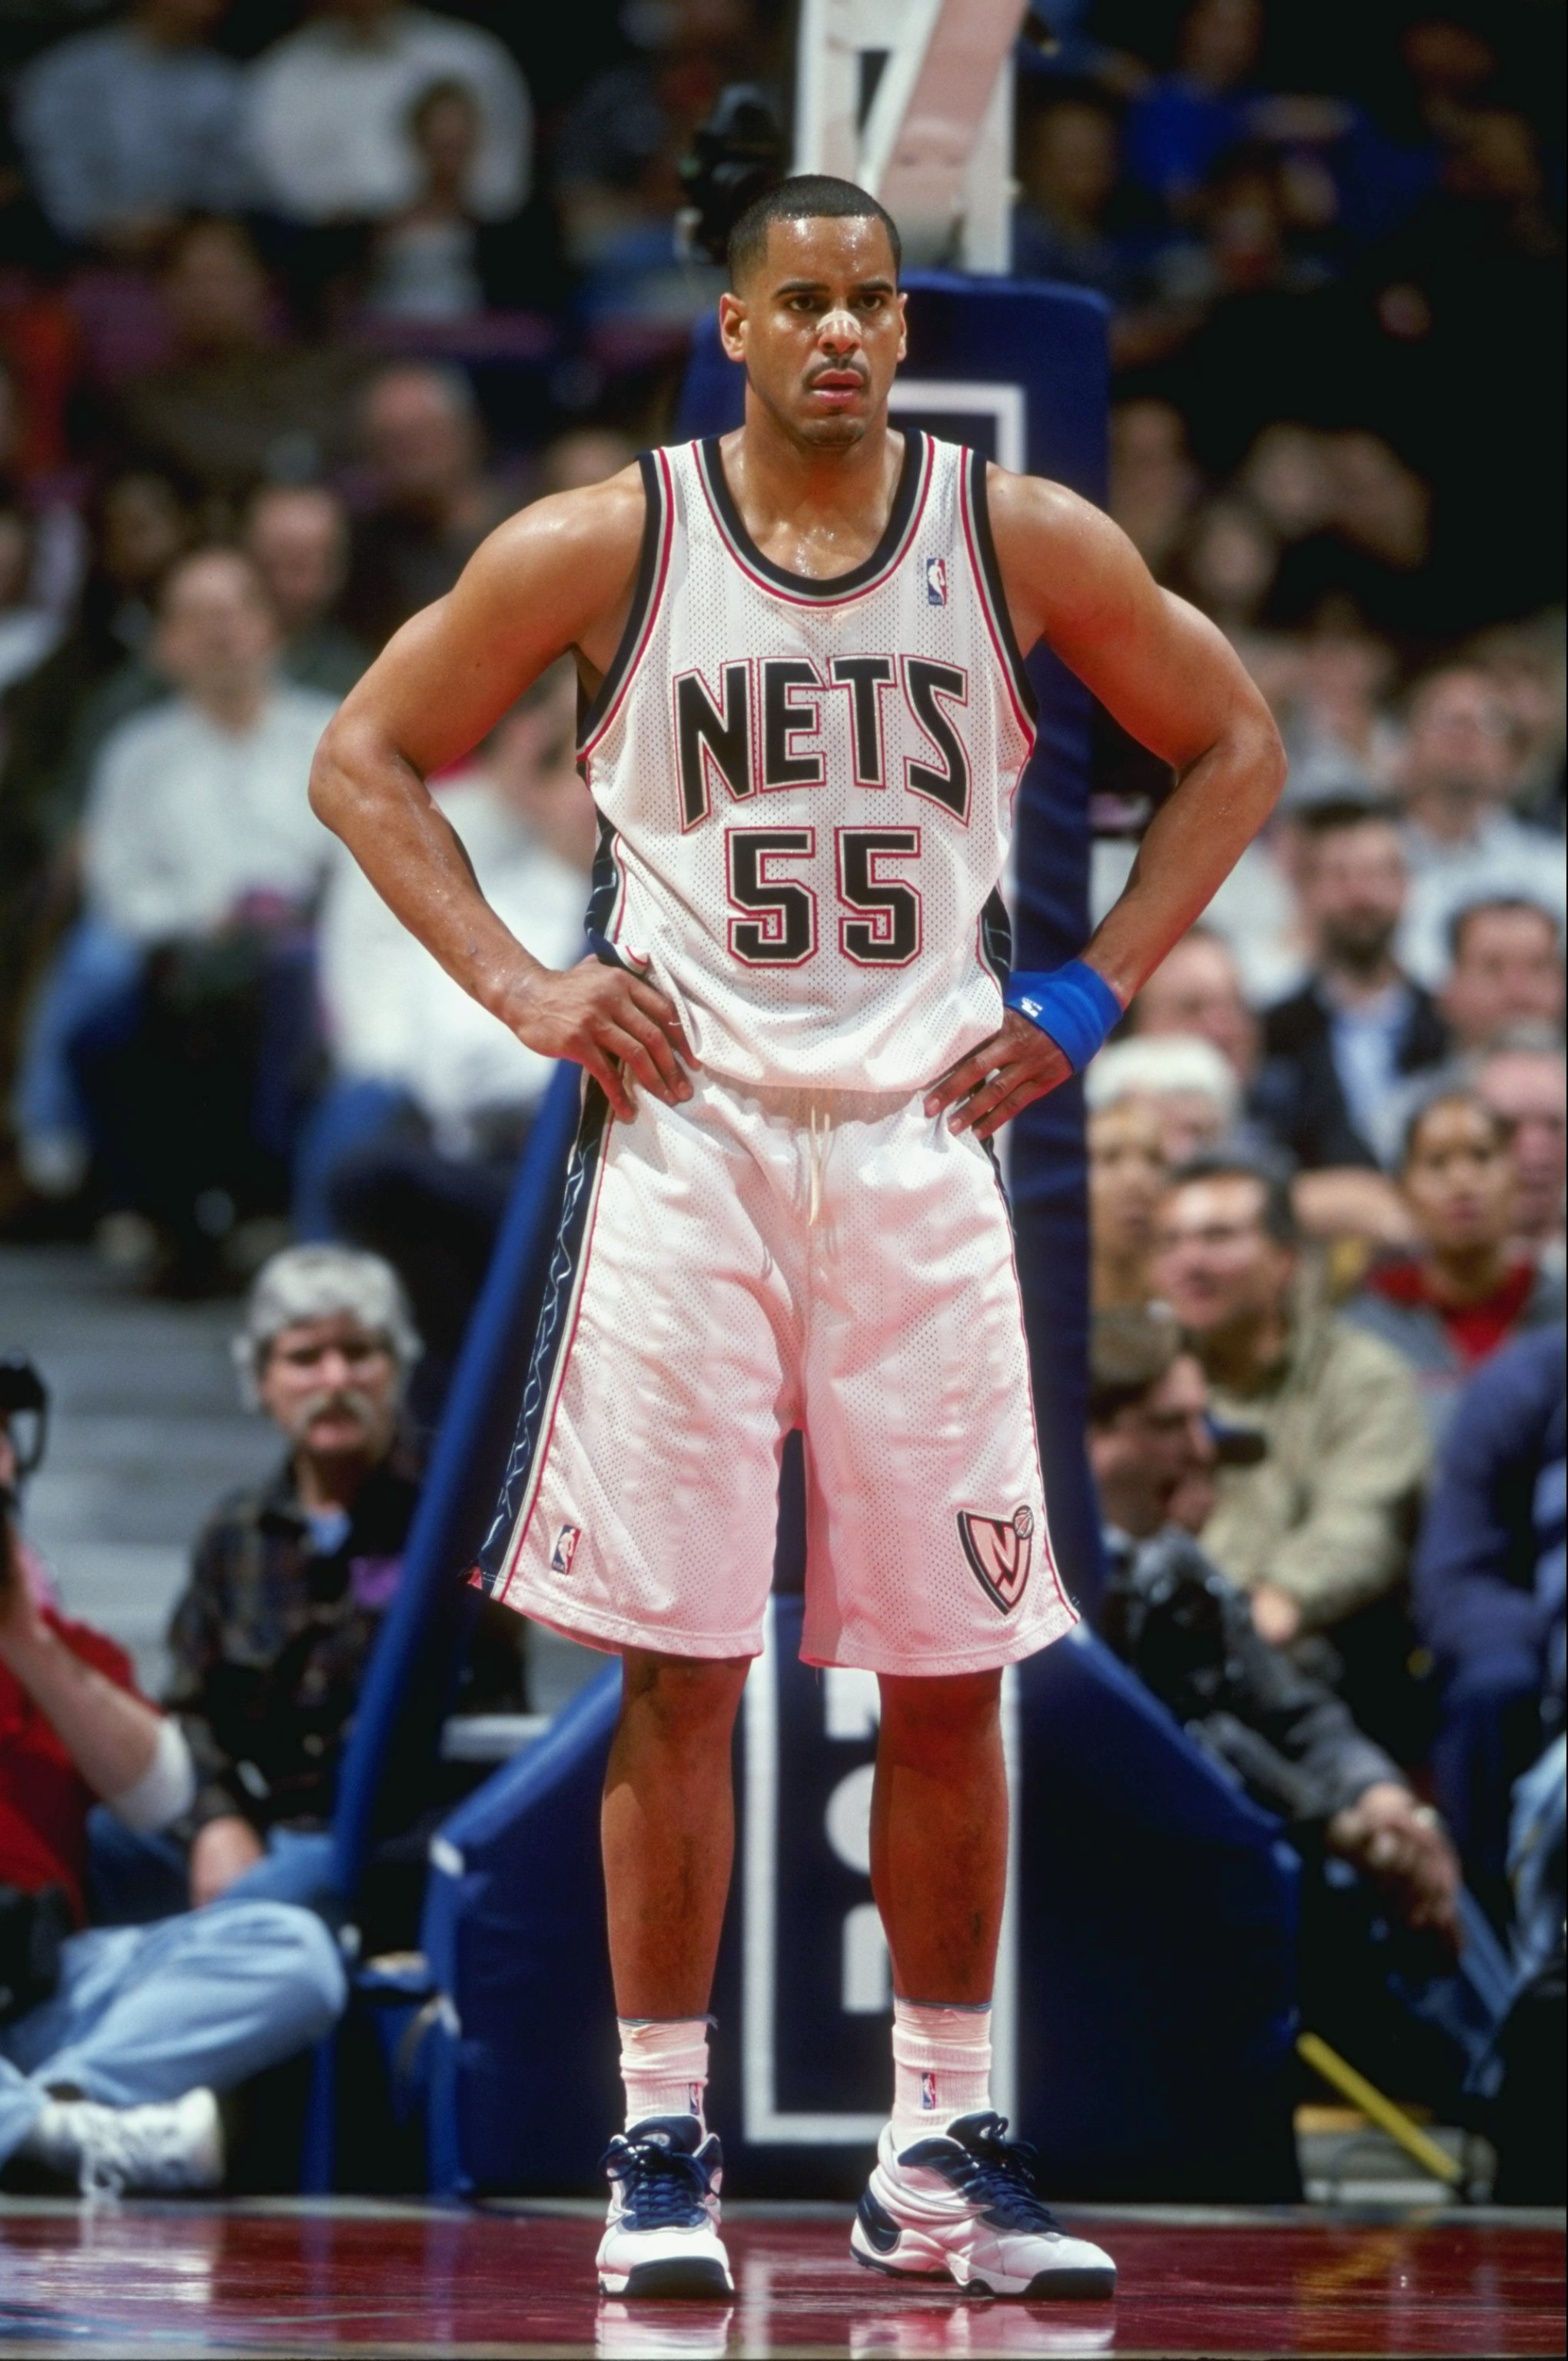 24 Mar 1999: Jayson Williams #55 of the New Jersey Nets stands under the basket as he waits during a game against the Detroit Pistons at the Continental Airlines Arena in East Rutherford, New Jersey. The Pistons defeated the Nets 84-71.